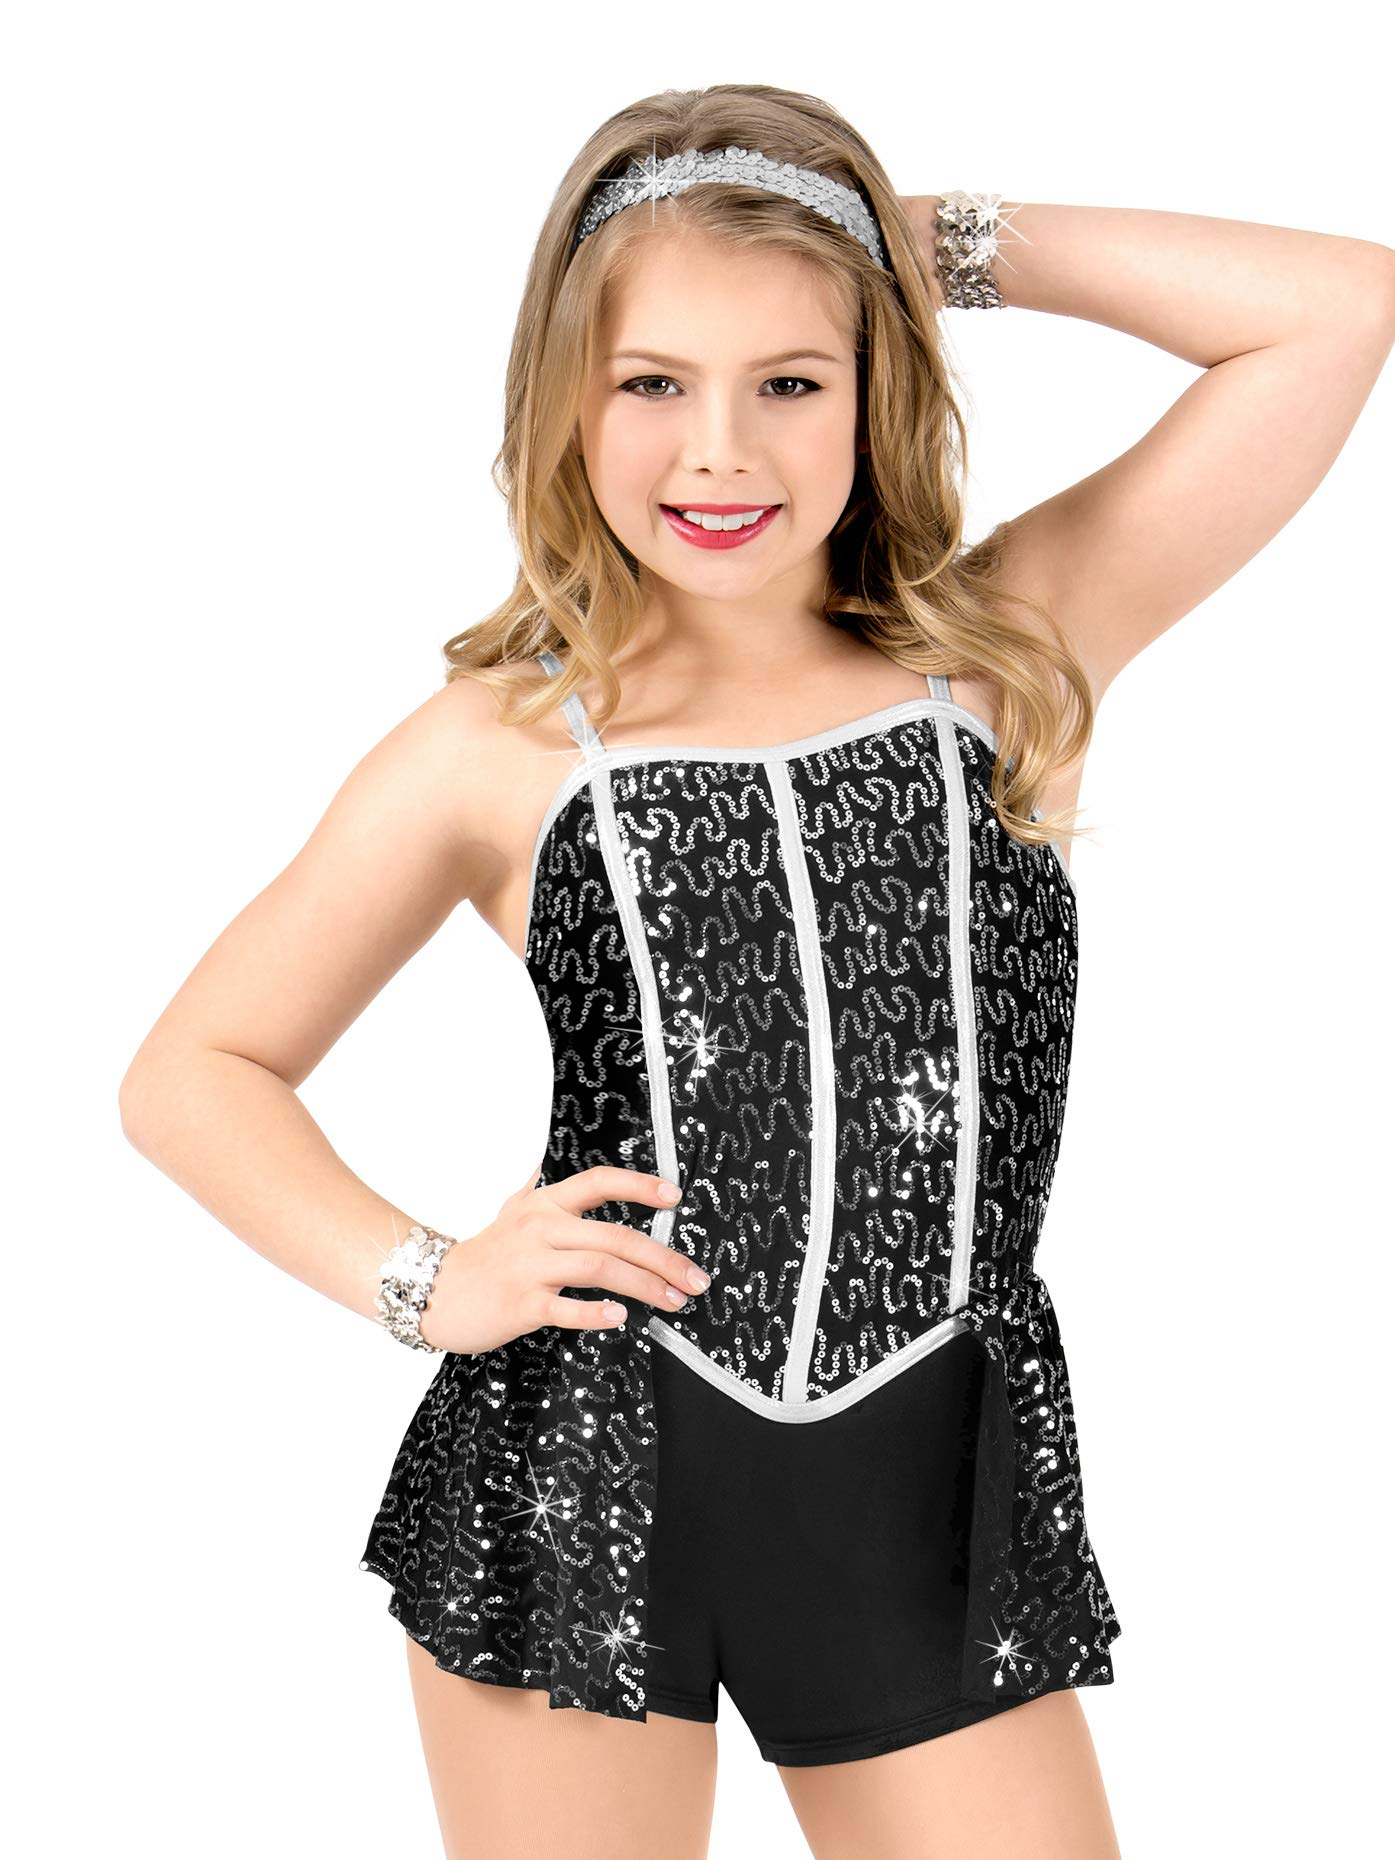 Girls Sequin Camisole Performance Shorty Unitard N7499CBLKM Black Medium by Elisse by Double Platinum